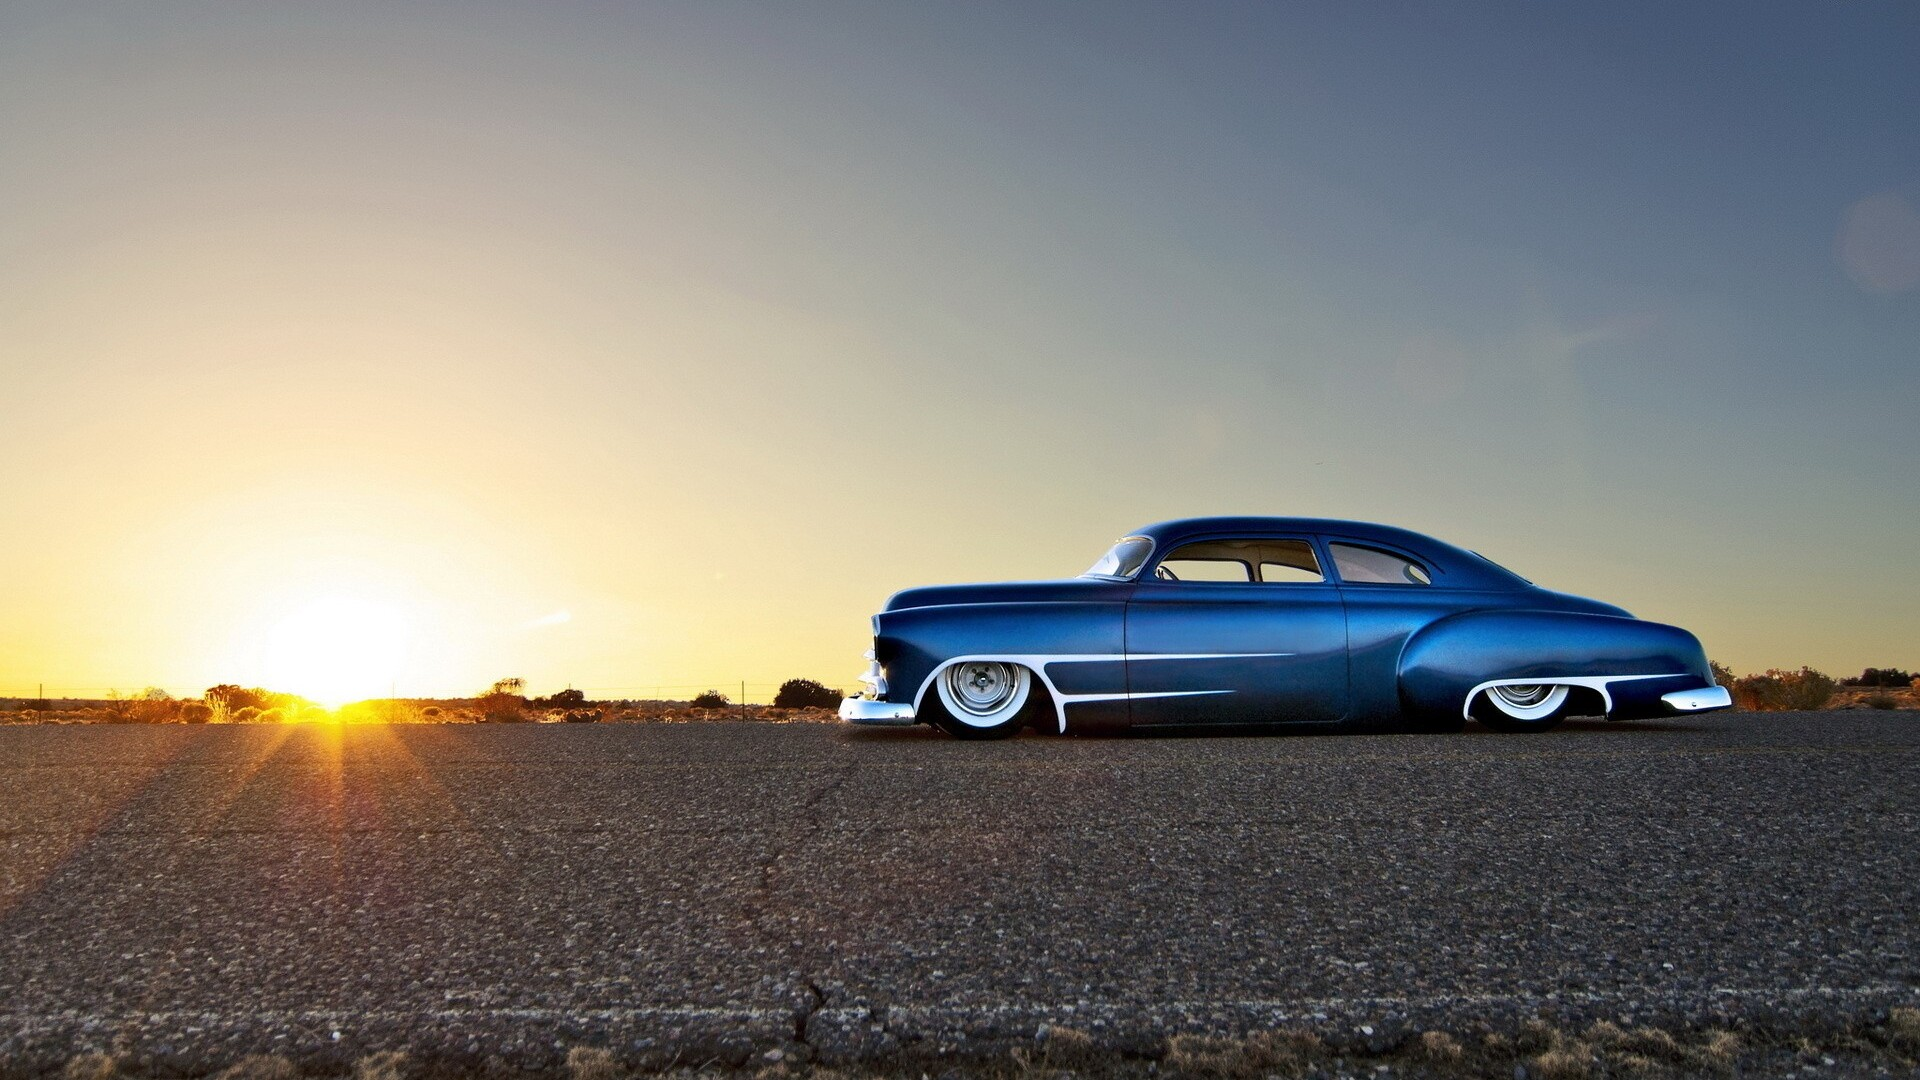 1920X1080 Hot Rod Chevrolet Laptop Full Hd 1080P Hd 4K Wallpapers, Images, Backgrounds -4461